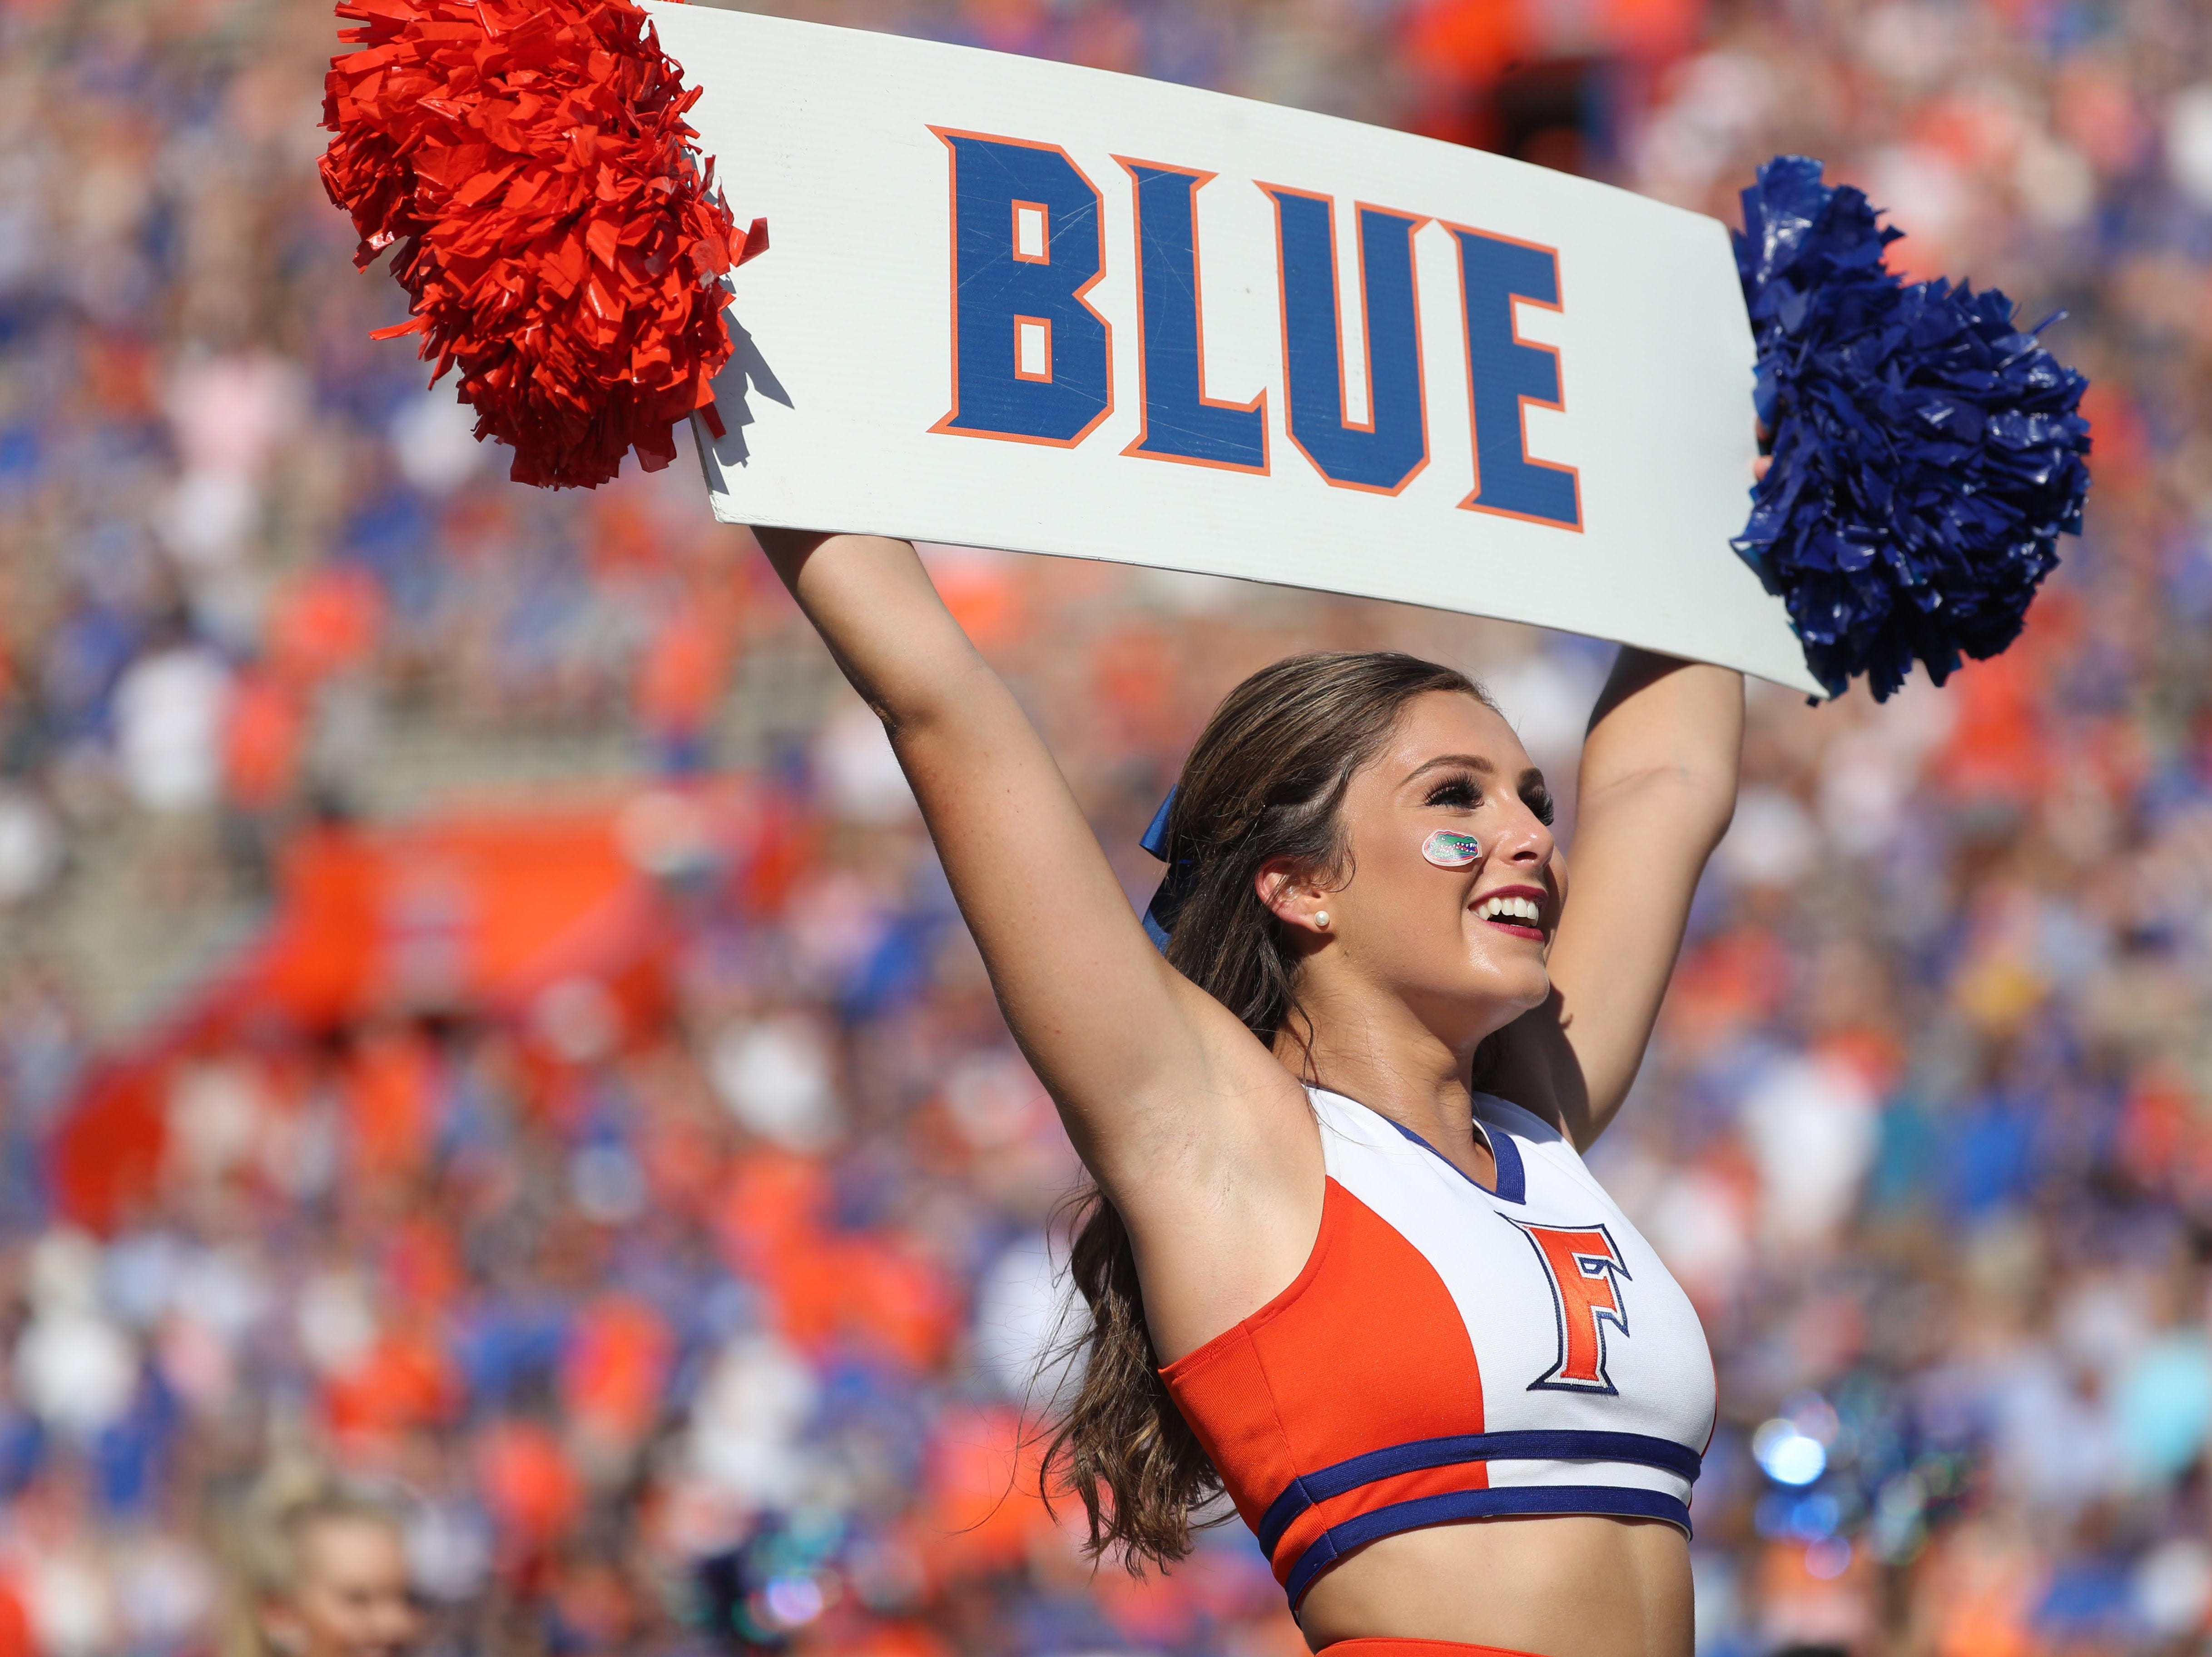 Sep 15, 2018; Gainesville, FL, USA; Florida Gators cheerleader performs during the first quarter against the Colorado State Rams at Ben Hill Griffin Stadium. Mandatory Credit: Kim Klement-USA TODAY Sports